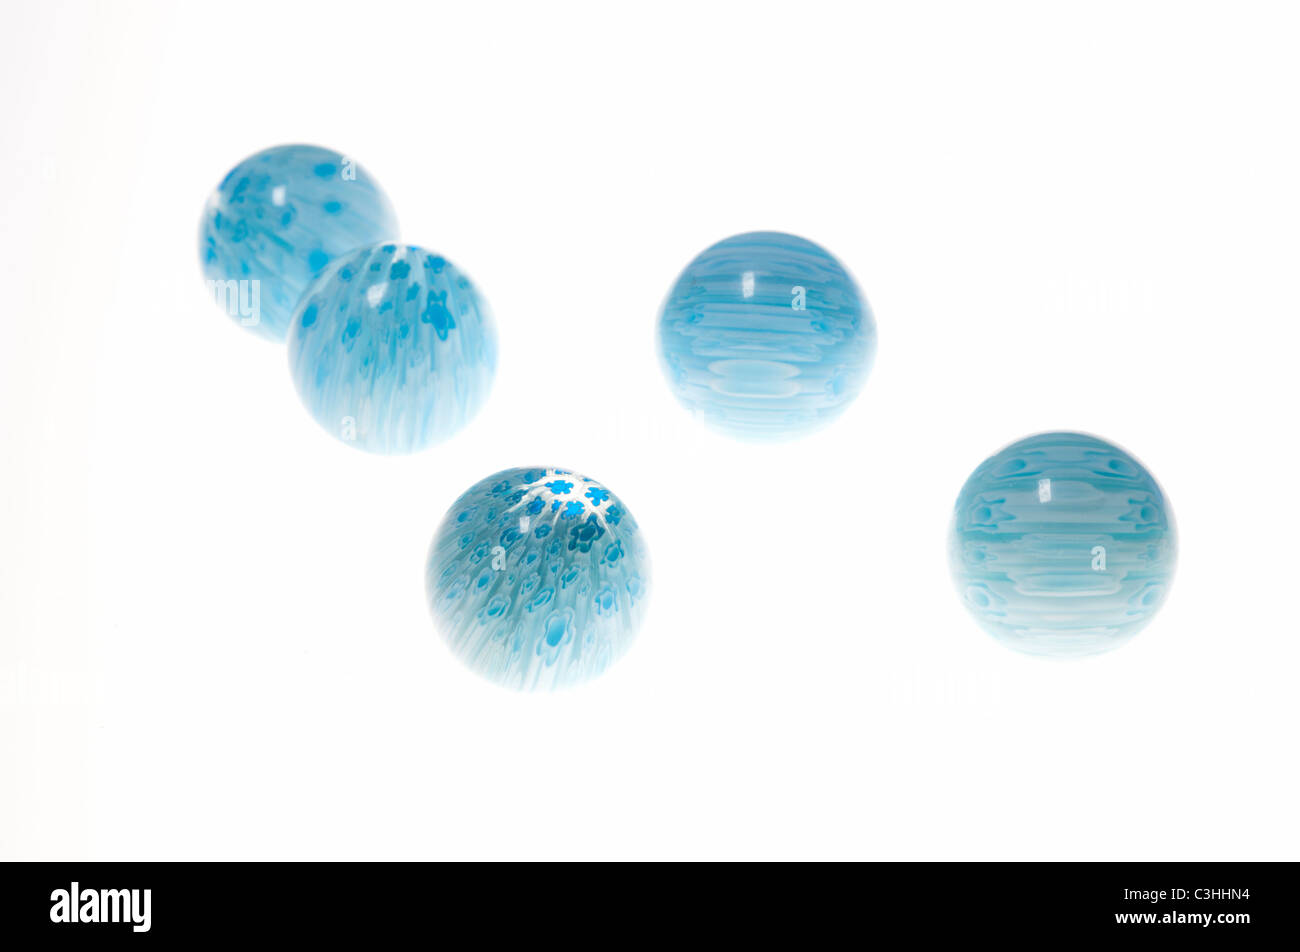 5 blue marbles on white - Stock Image